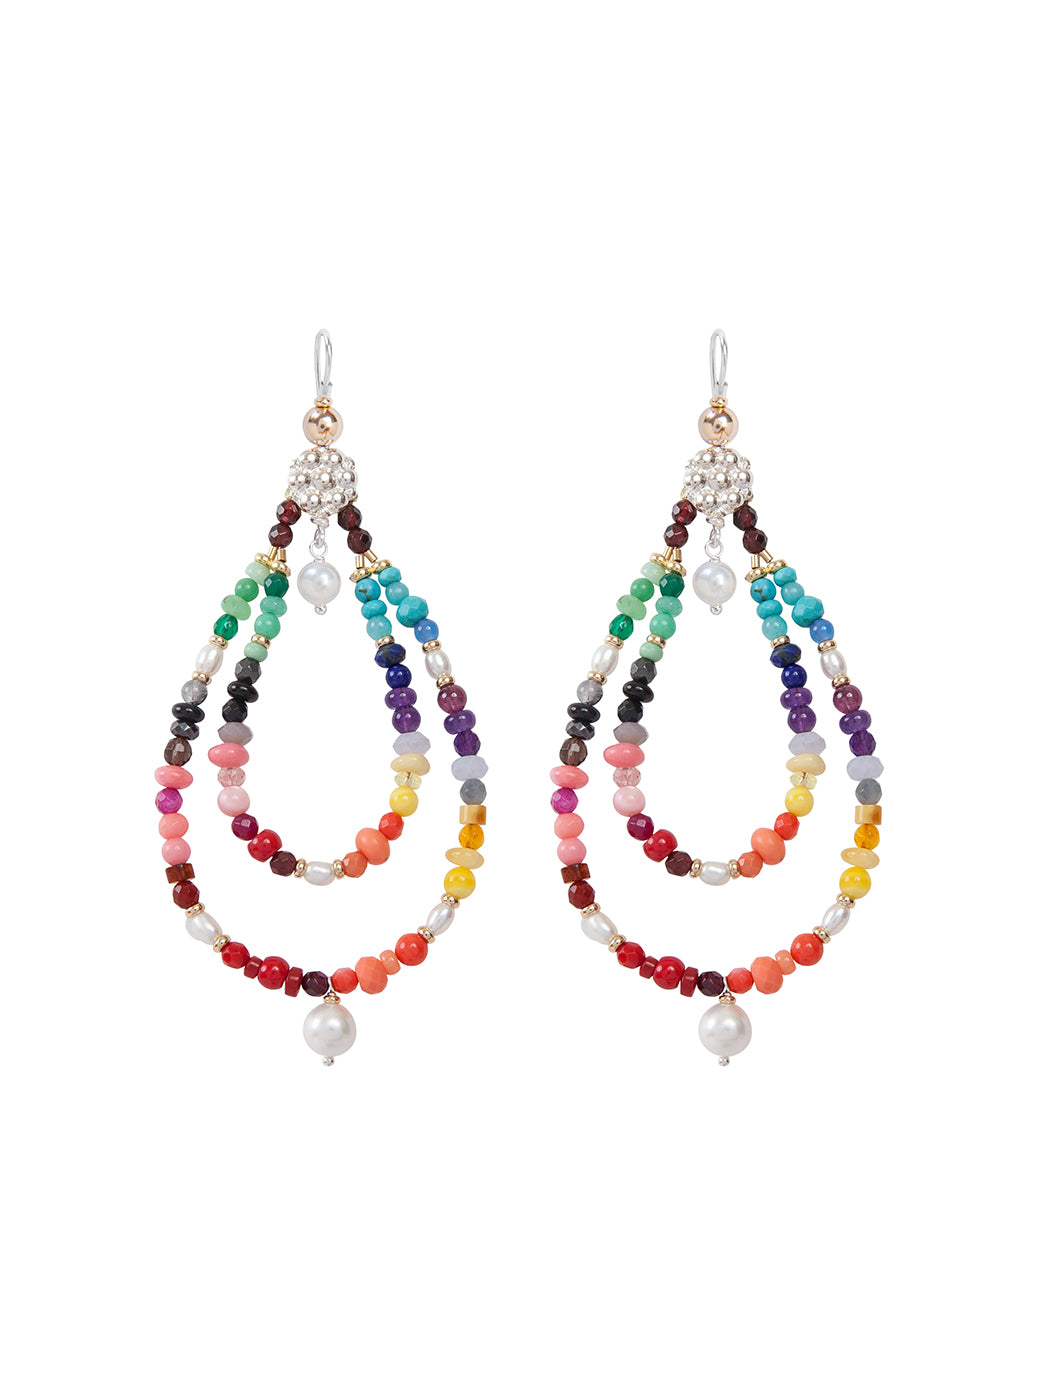 Fiorina Jewellery Rahini Earrings Chakra